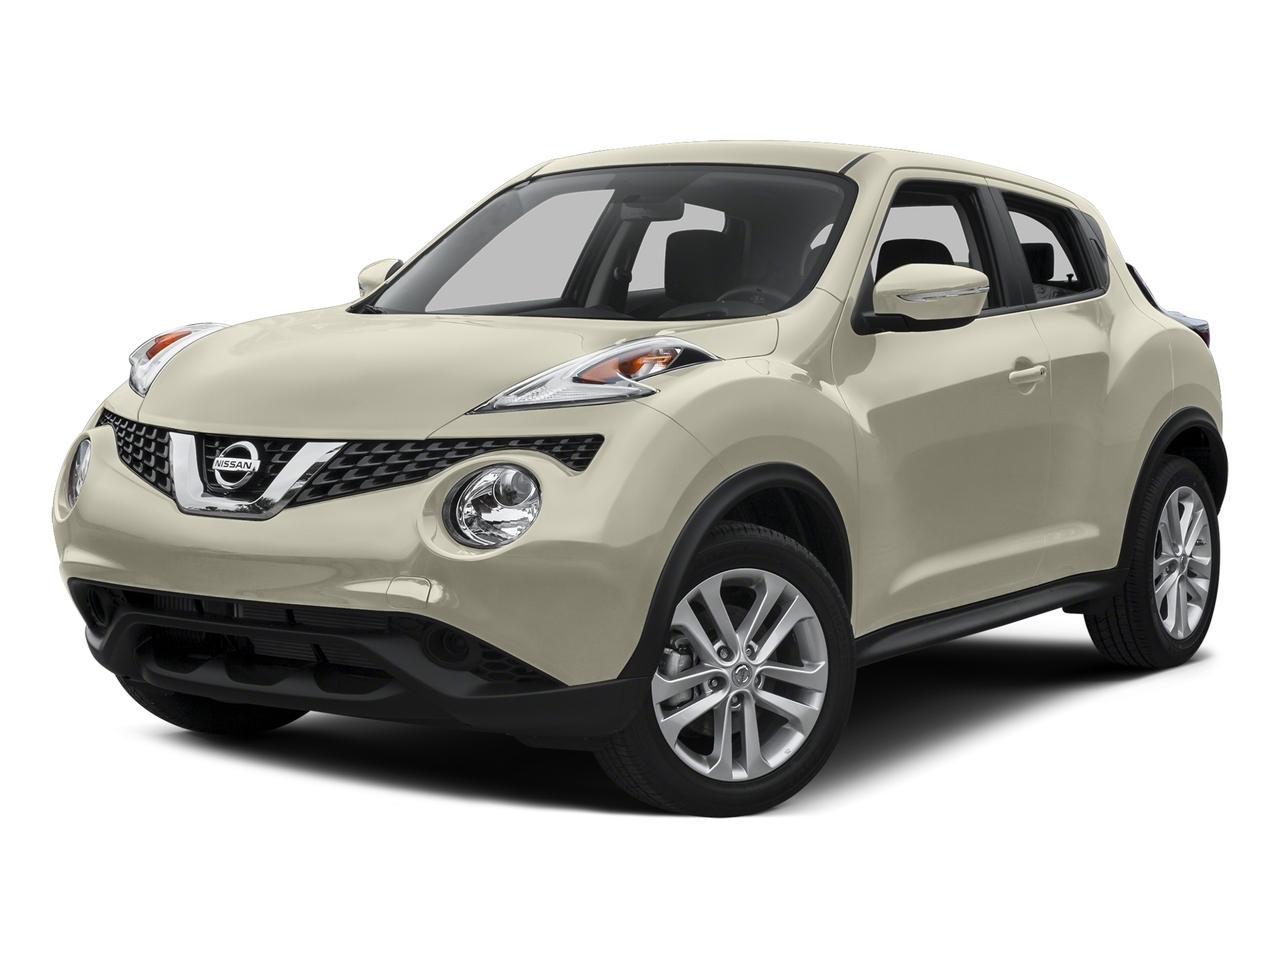 2015 Nissan JUKE Vehicle Photo in Anchorage, AK 99515